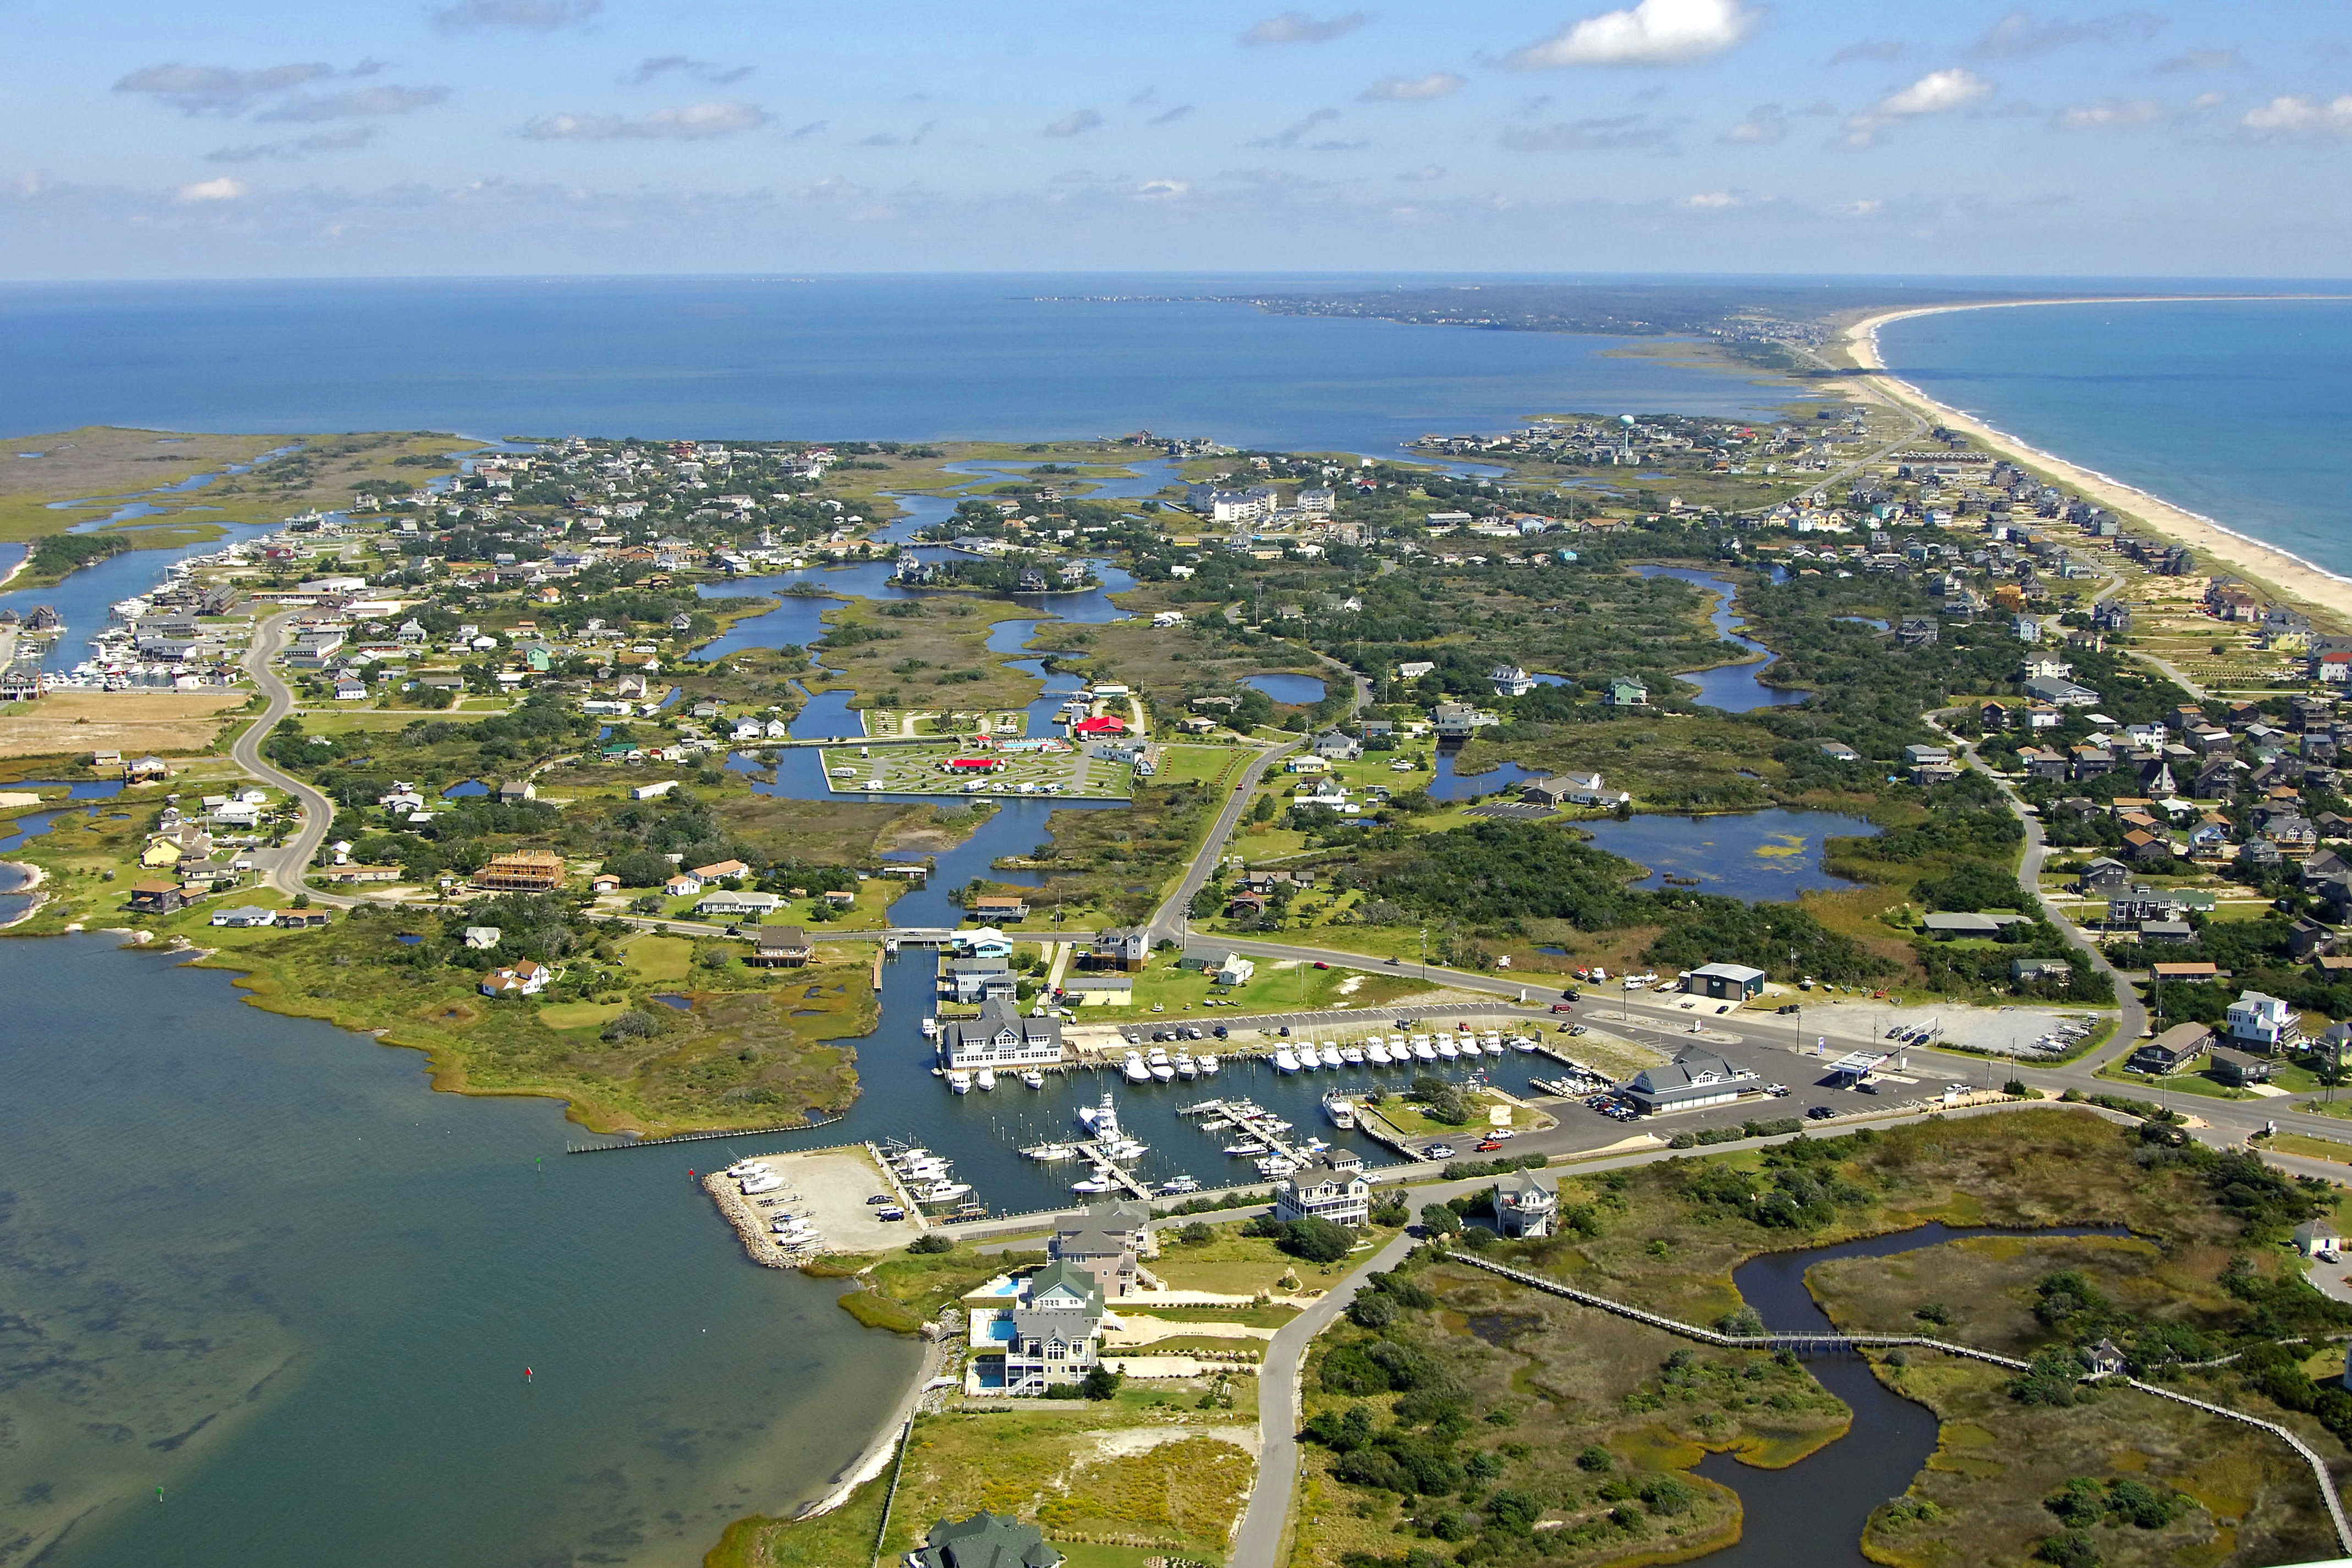 Hatteras, North Carolina